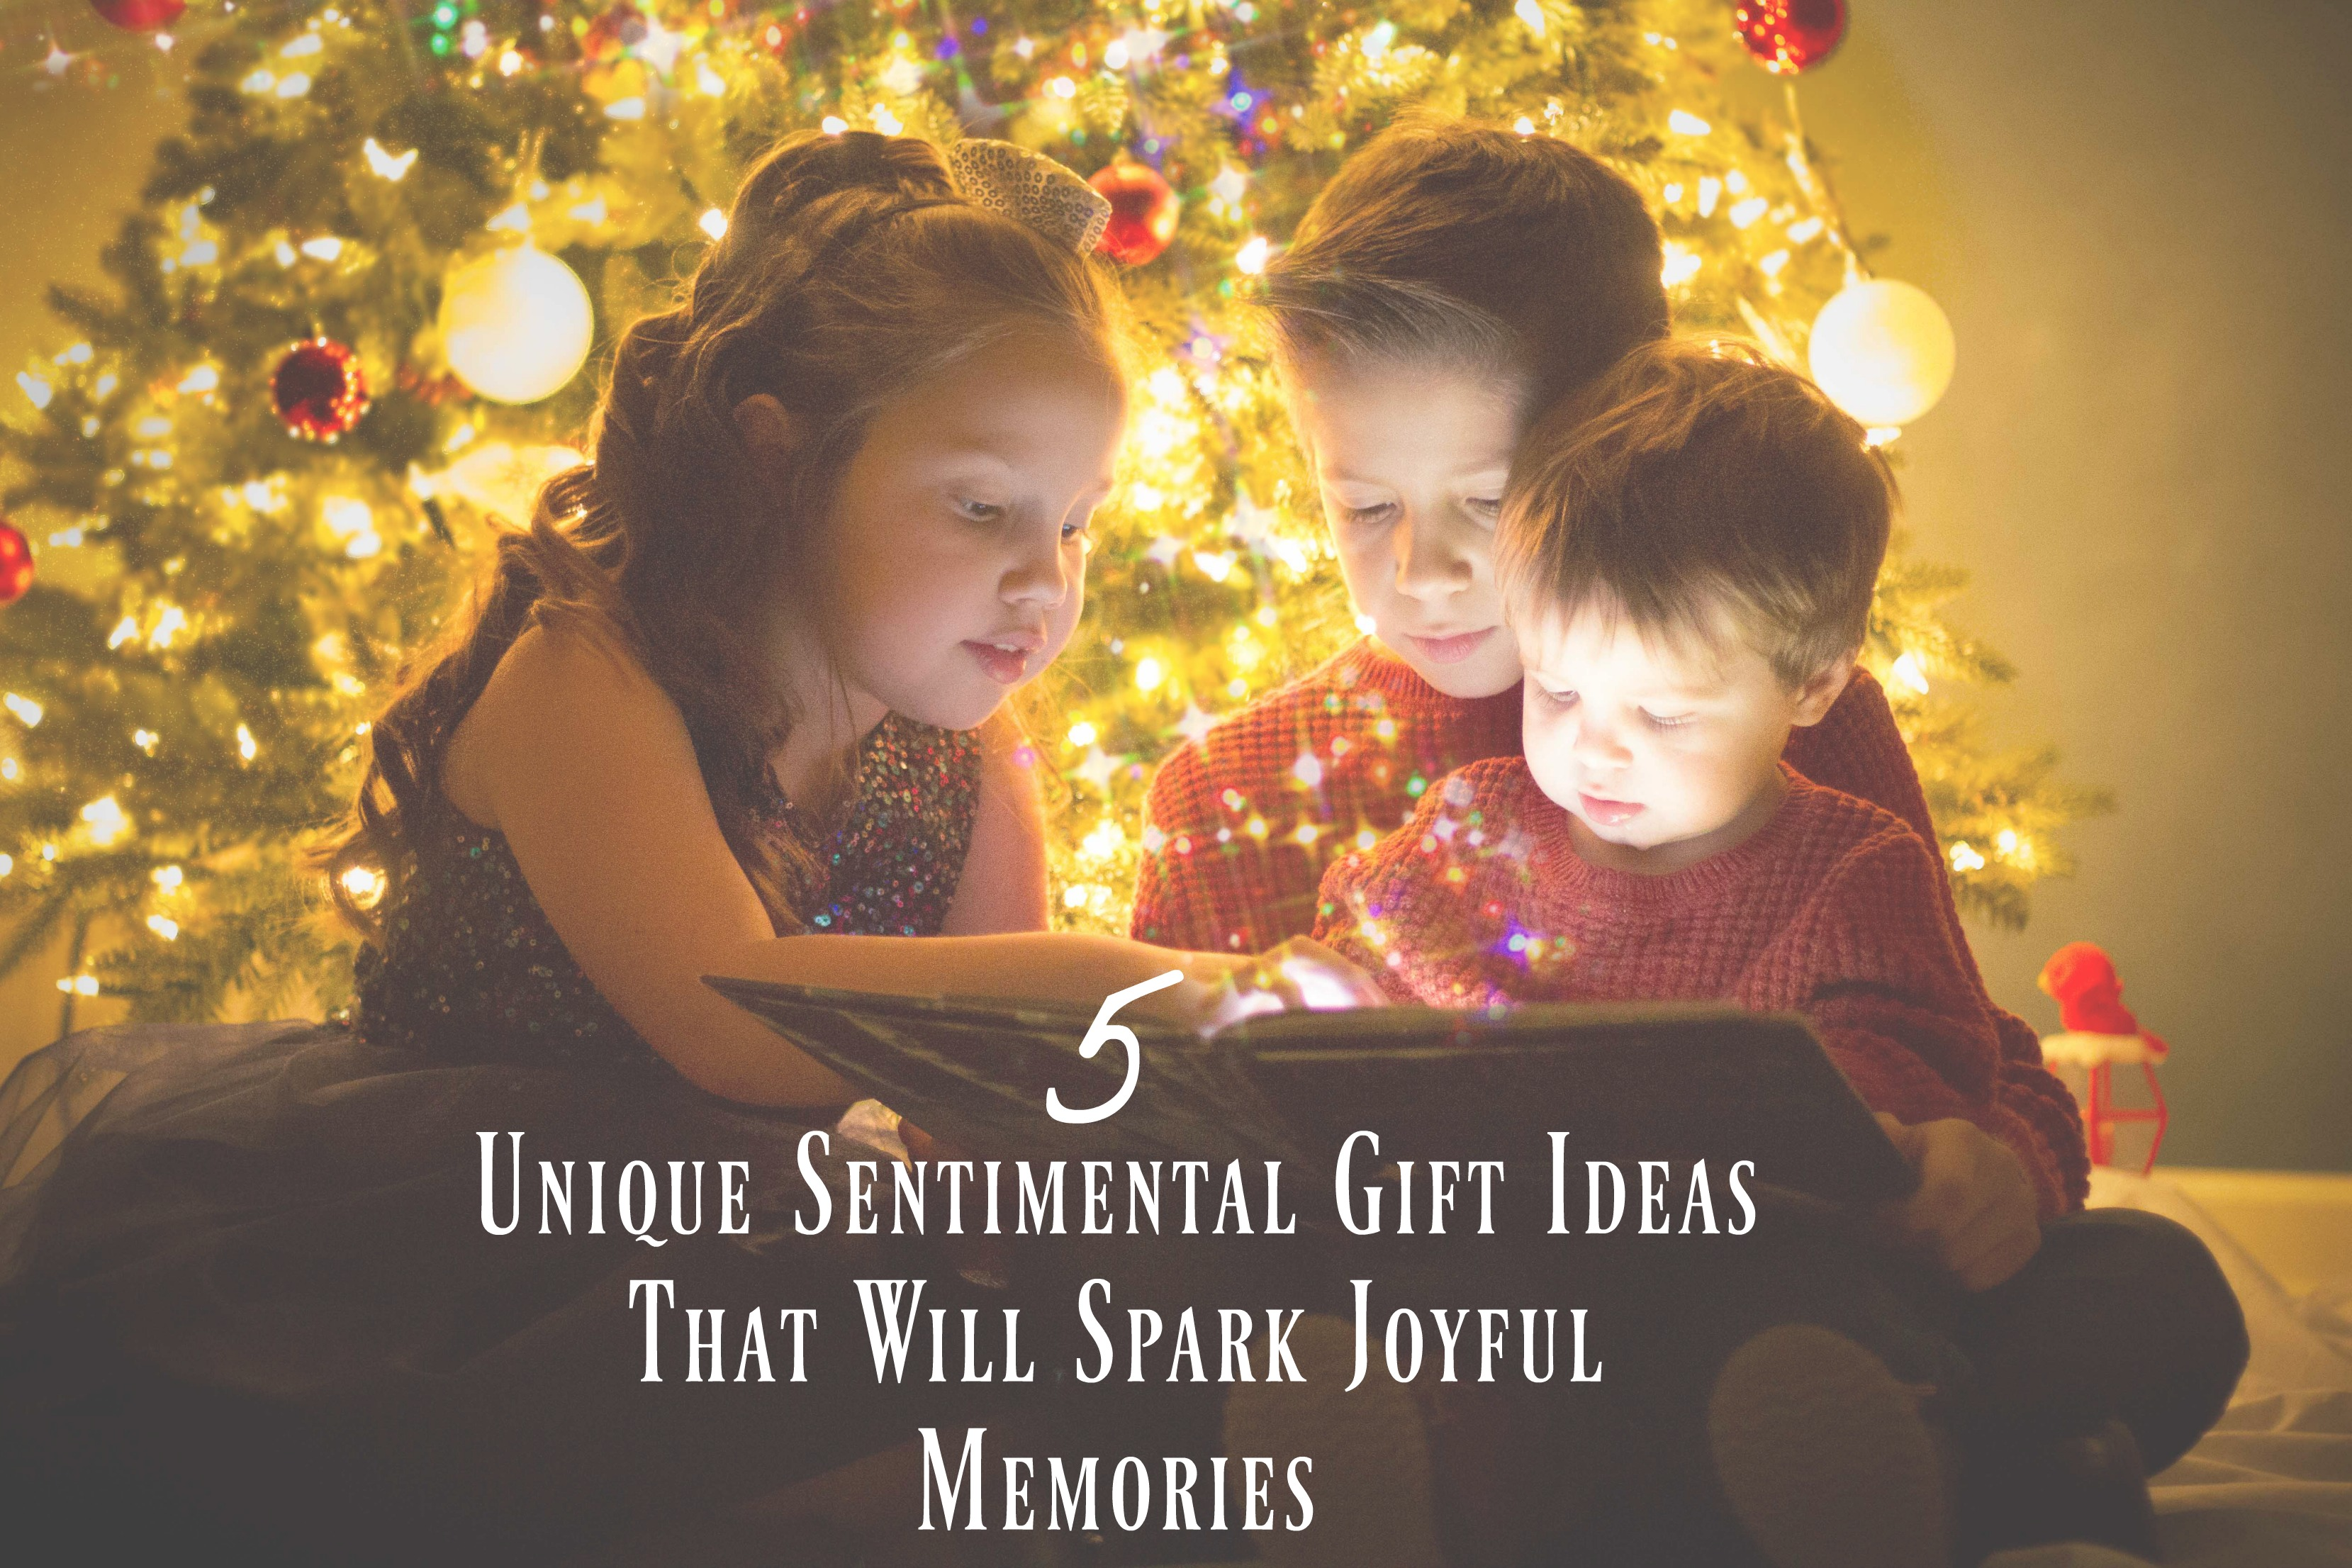 magic-book-sentimental-gift-ideas